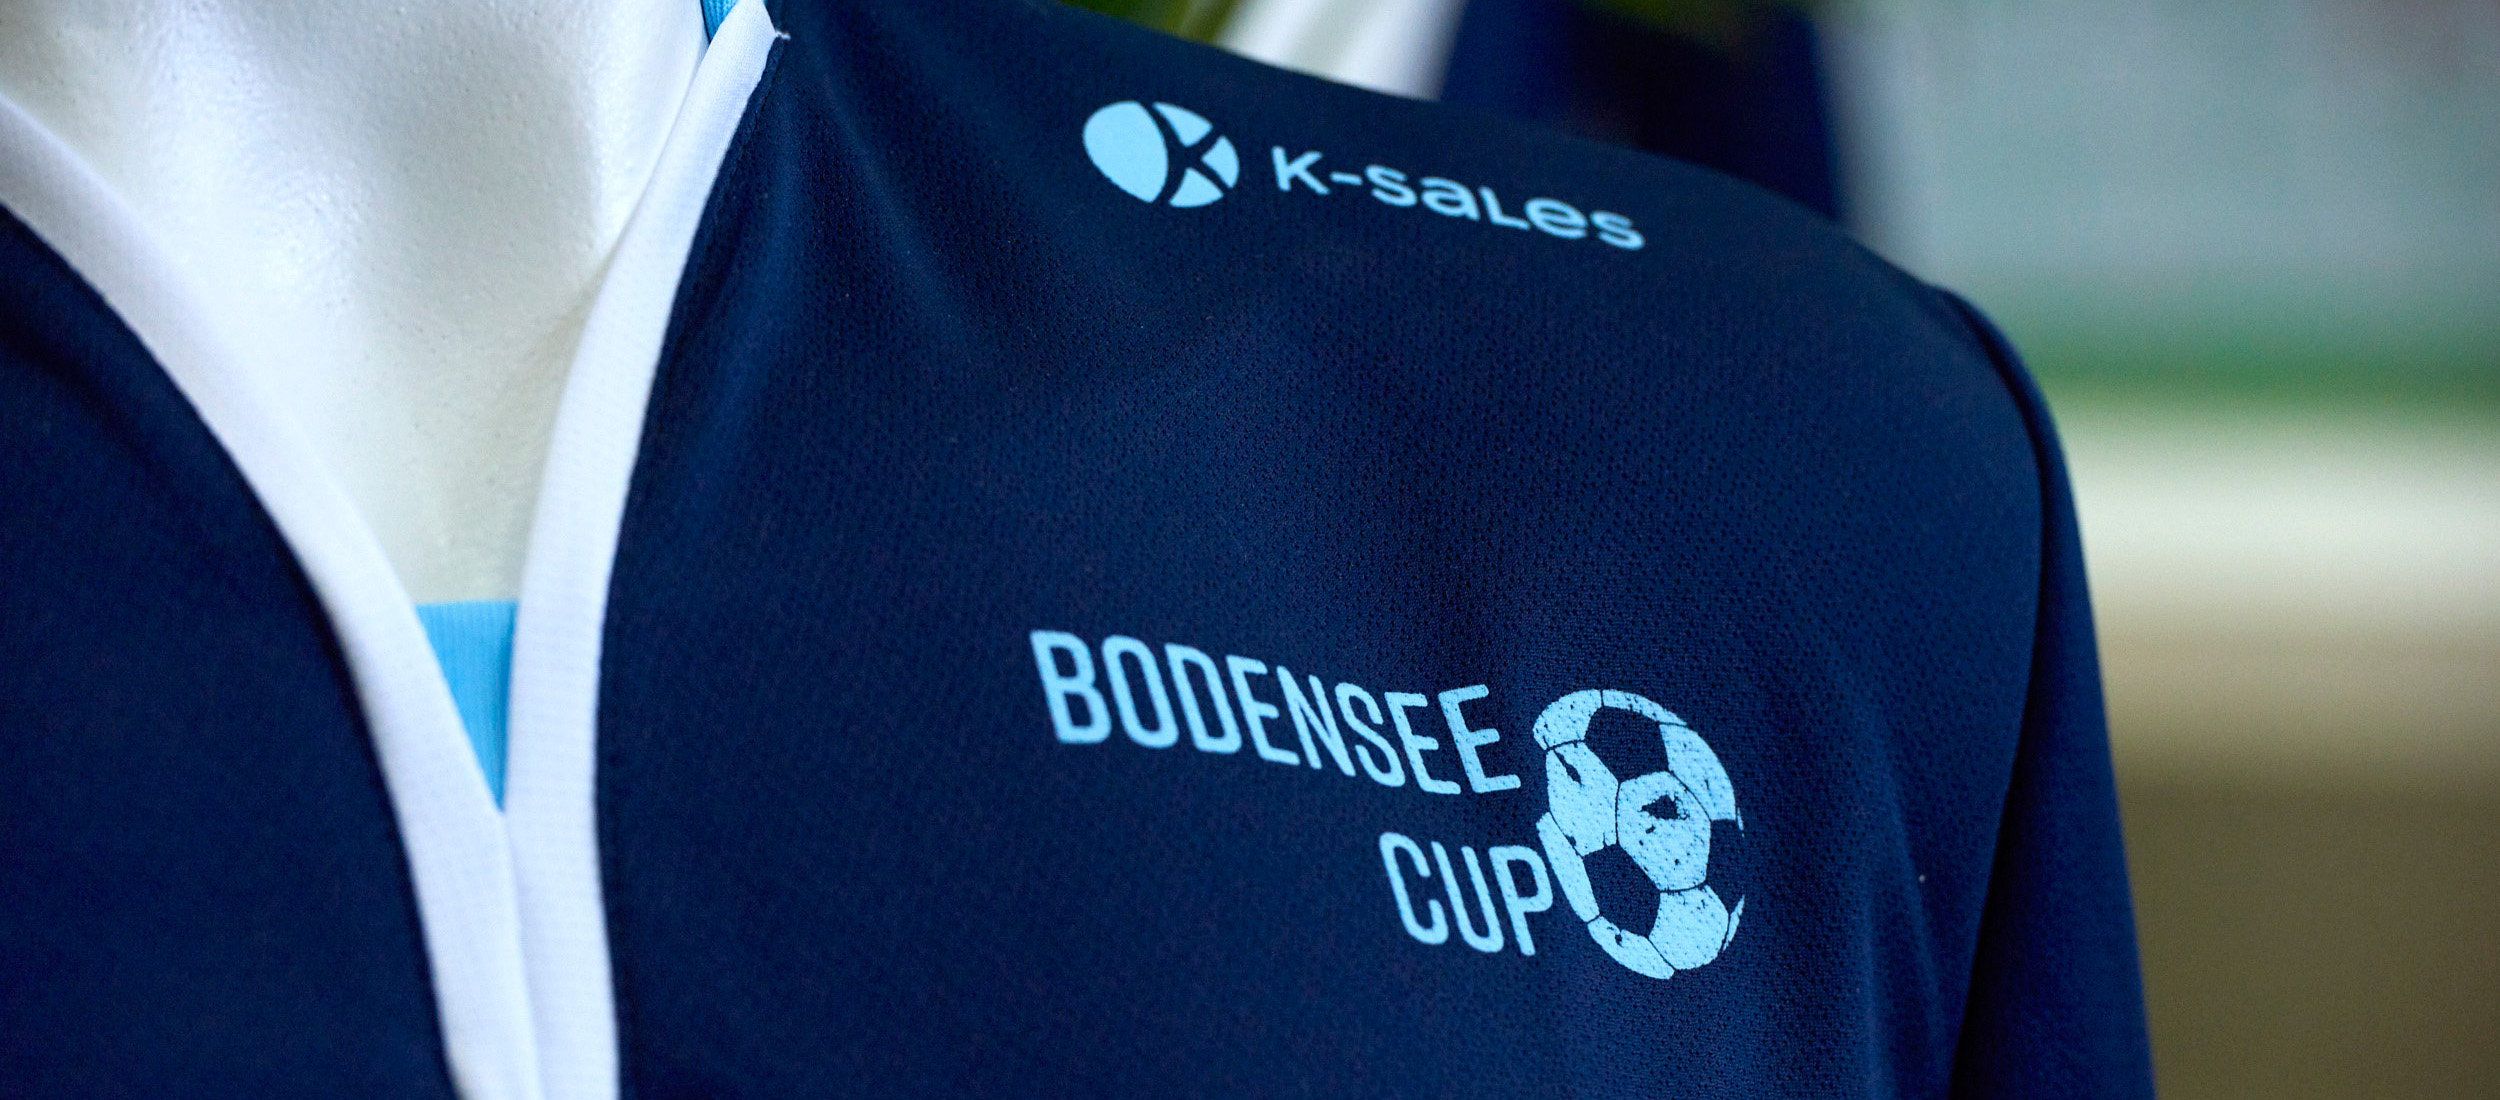 Bodensee-Cup_20171111_135215.jpg